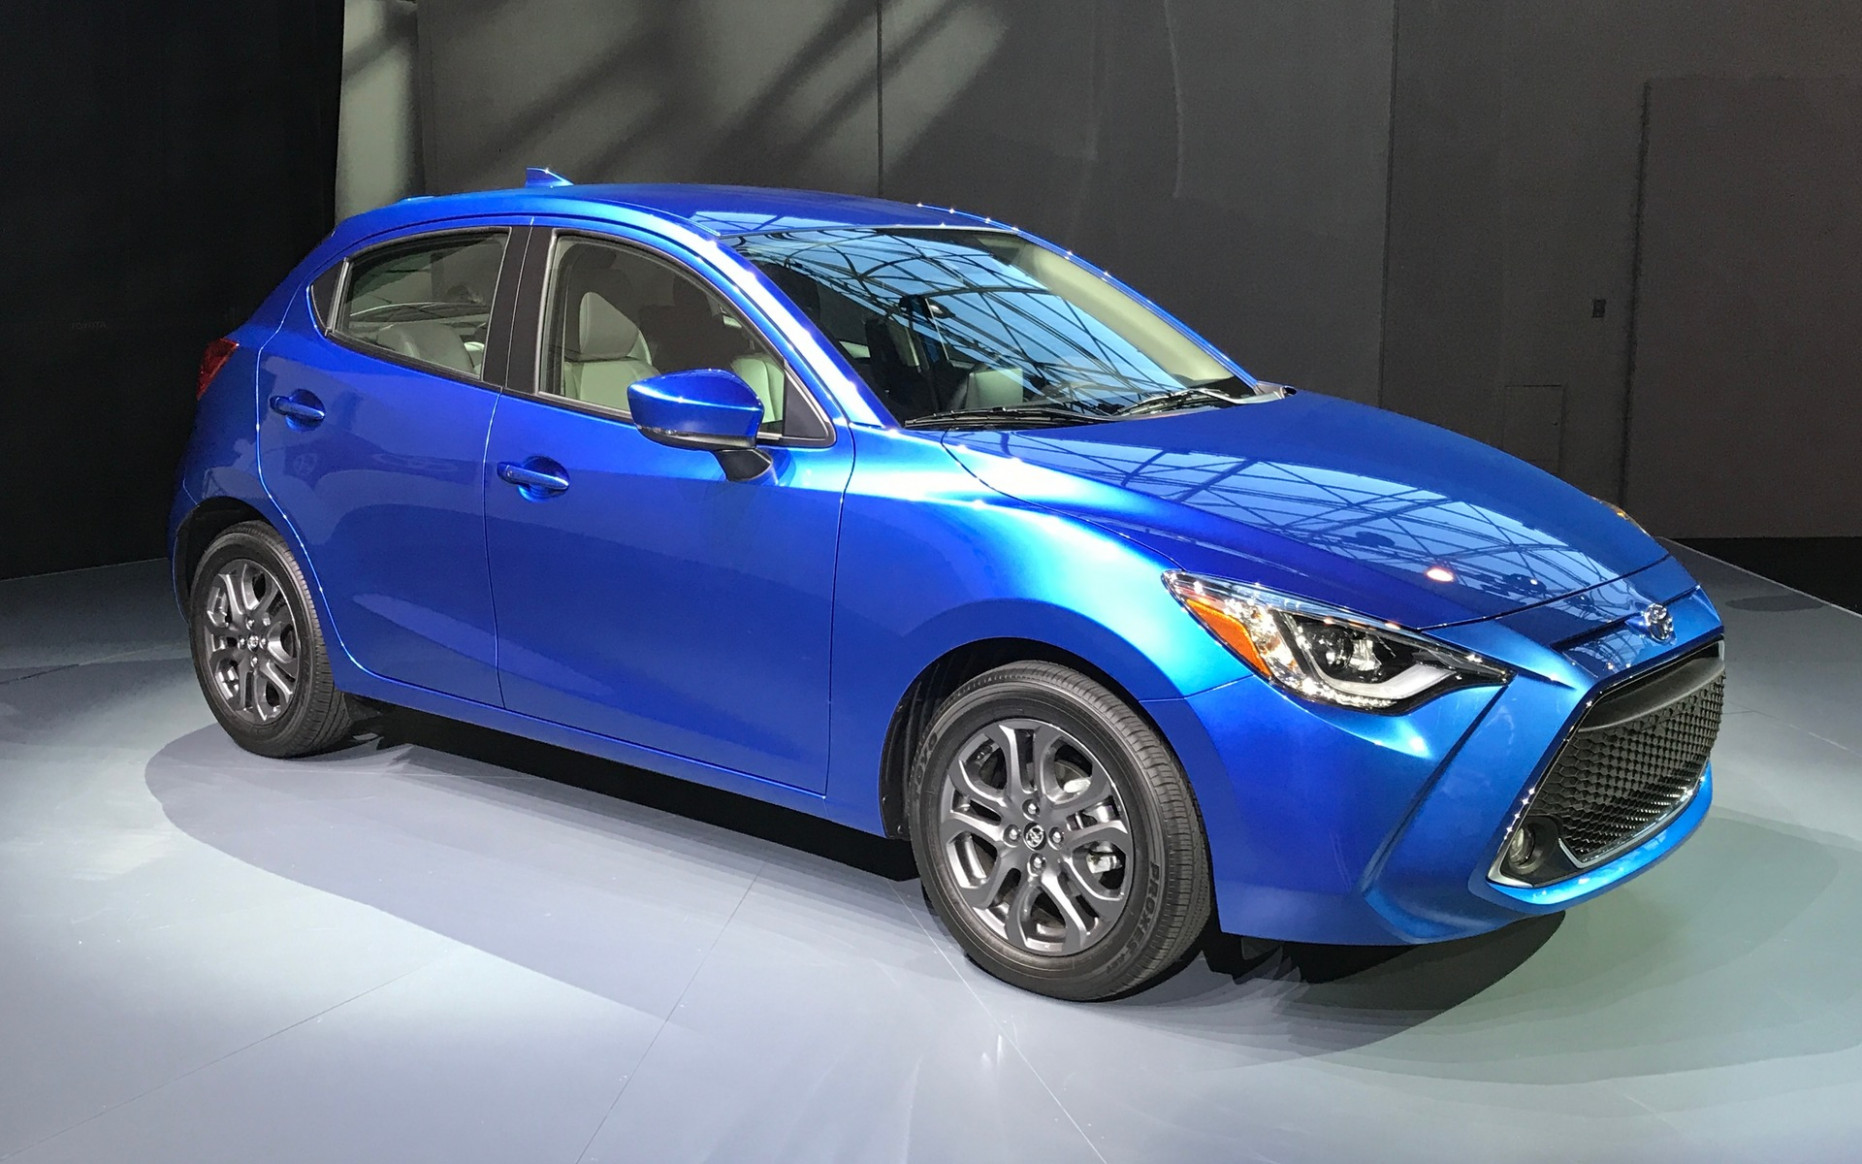 9 Toyota Yaris Hatchback Makes Official Debut in New York - The ..